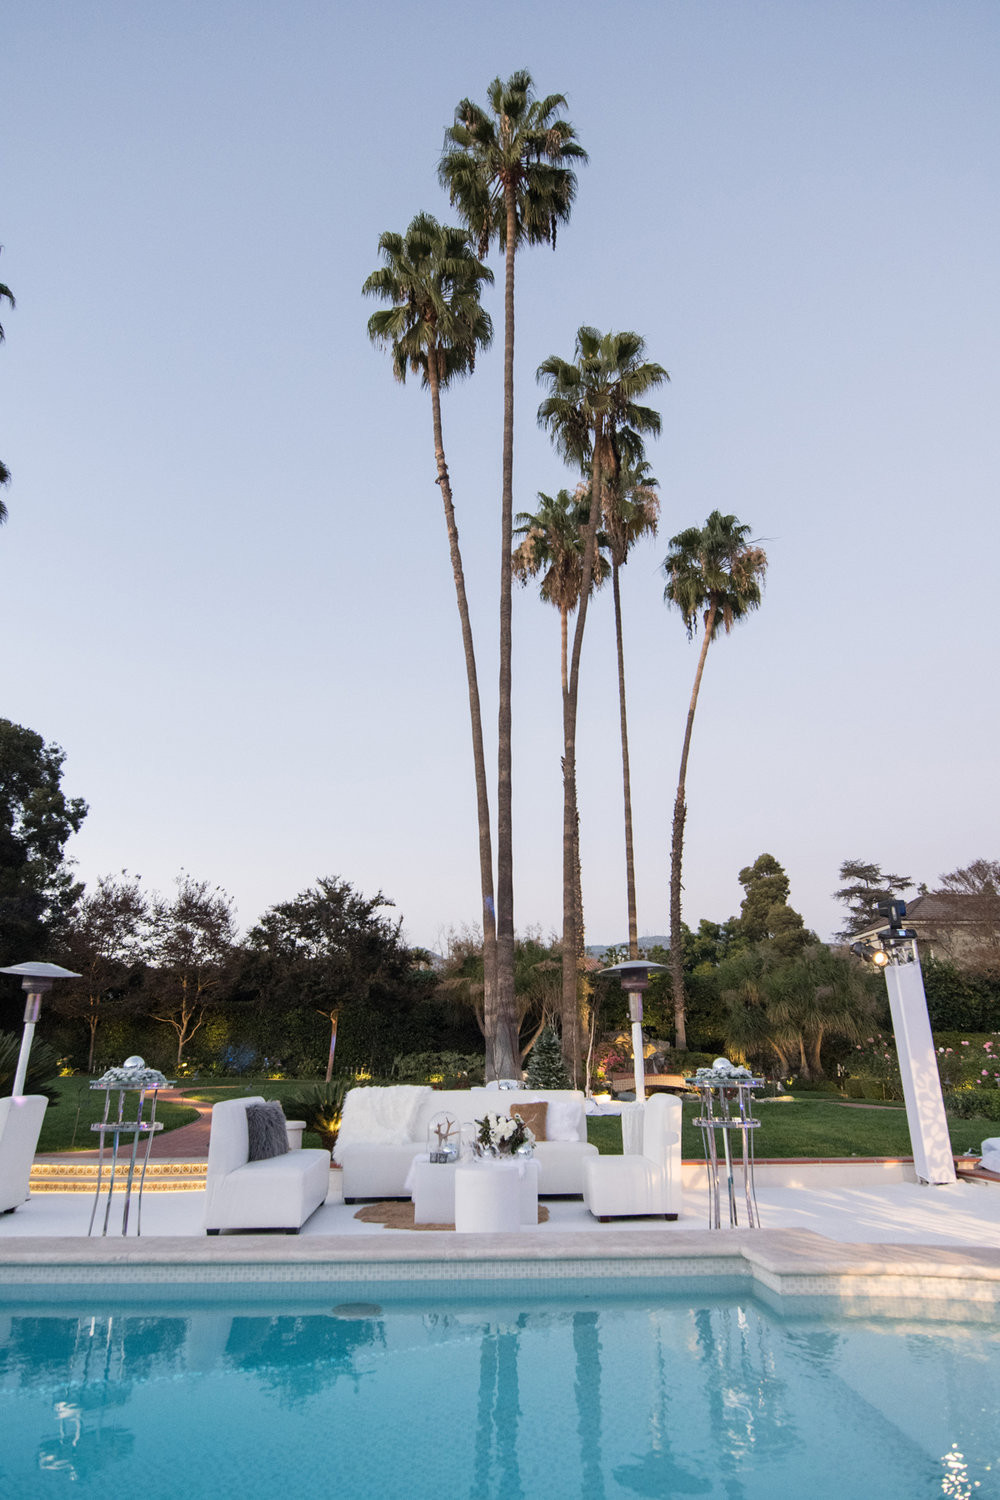 Narnia Inspired Opulent Winter Wonderland Party palm trees in california backyard.jpg